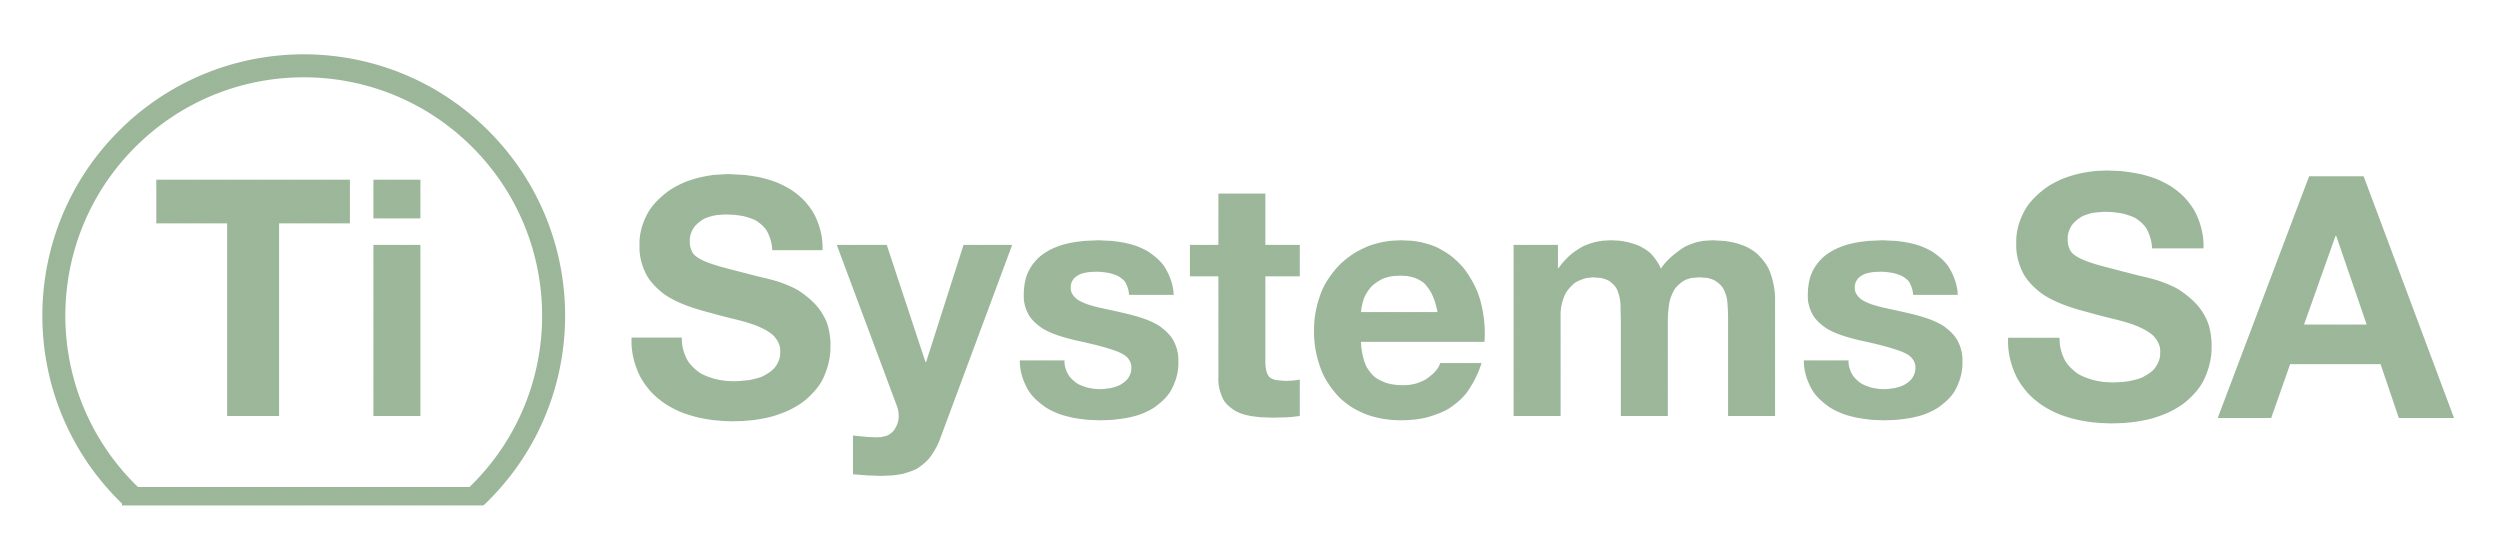 Ti Systems Logo Green 2